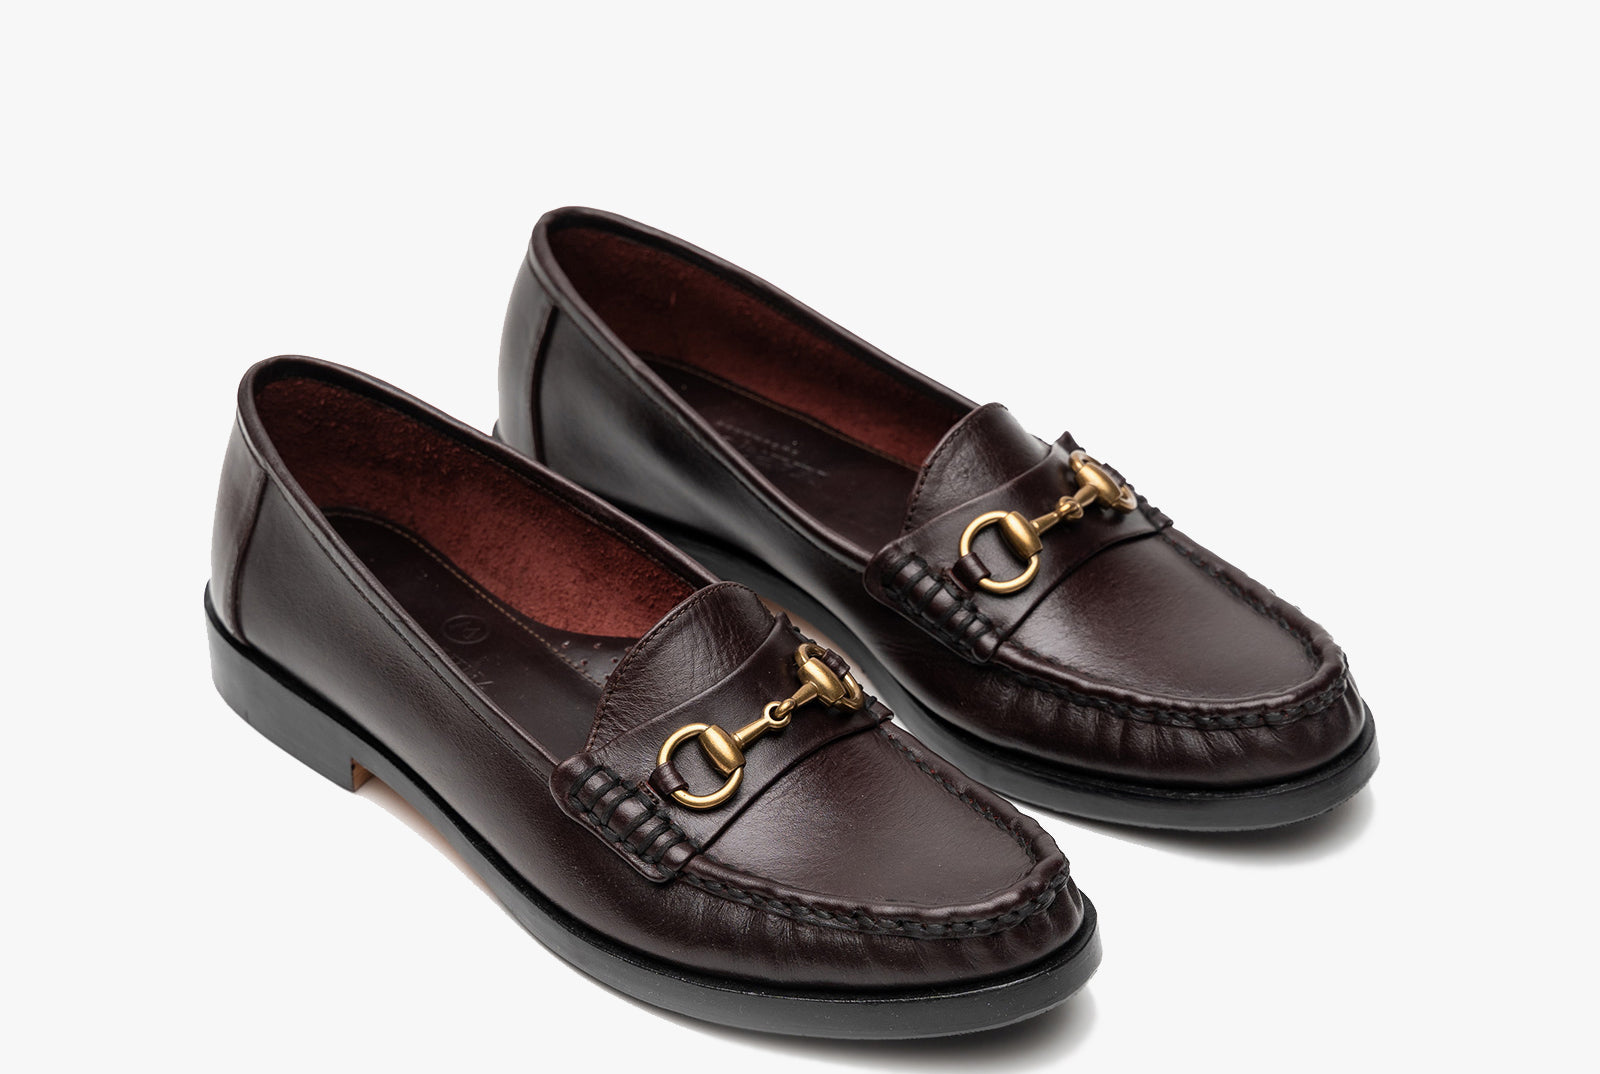 The Bonnie Horsebit Loafers - Oxblood Burgundy - Marquina Shoemaker